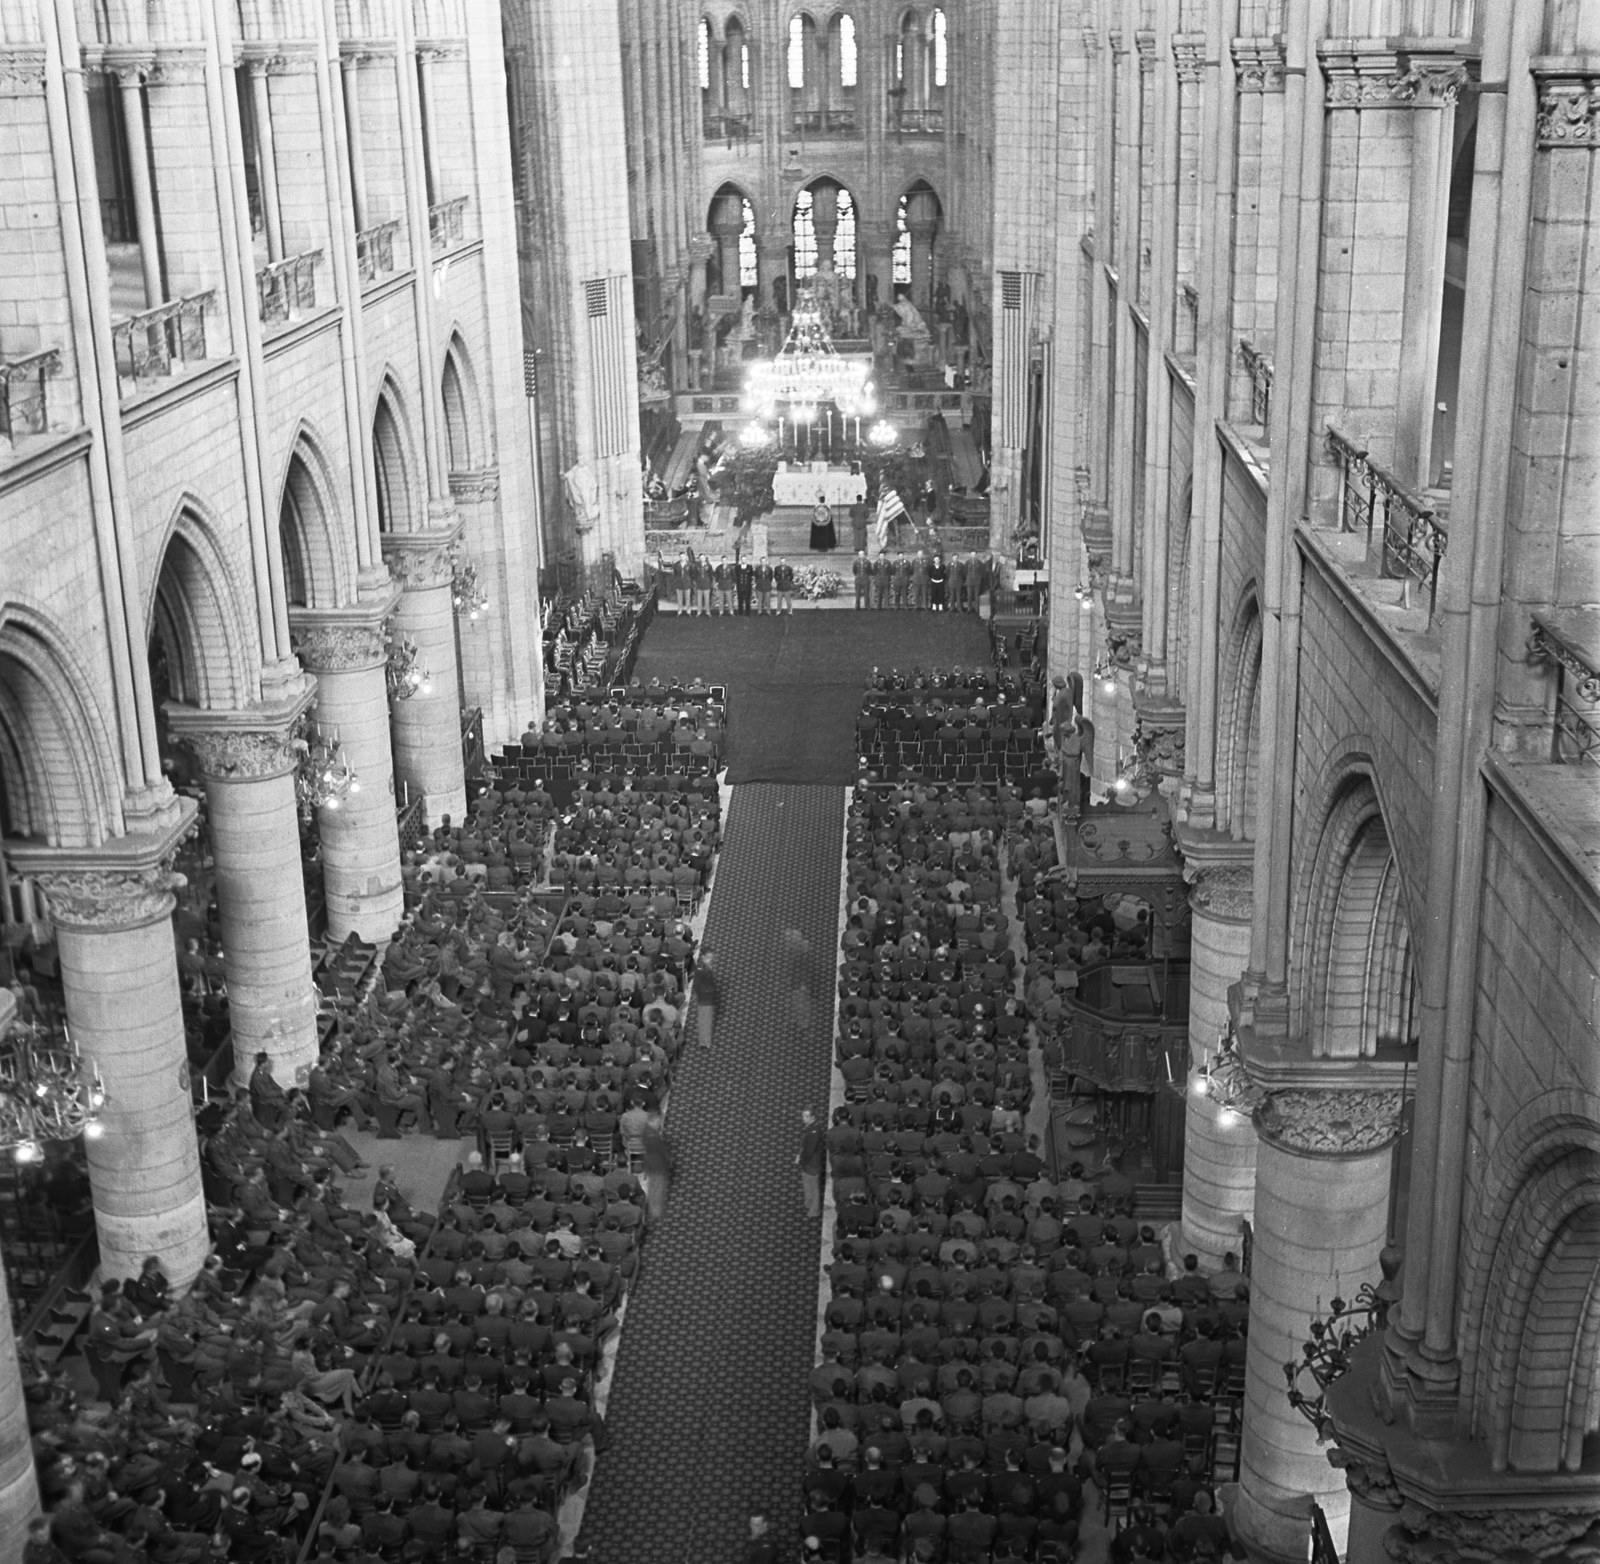 US soldiers fill the pews of Notre Dame Cathedral during the GI memorial service for US President Franklin D. Roosevelt on April 16, 1945.